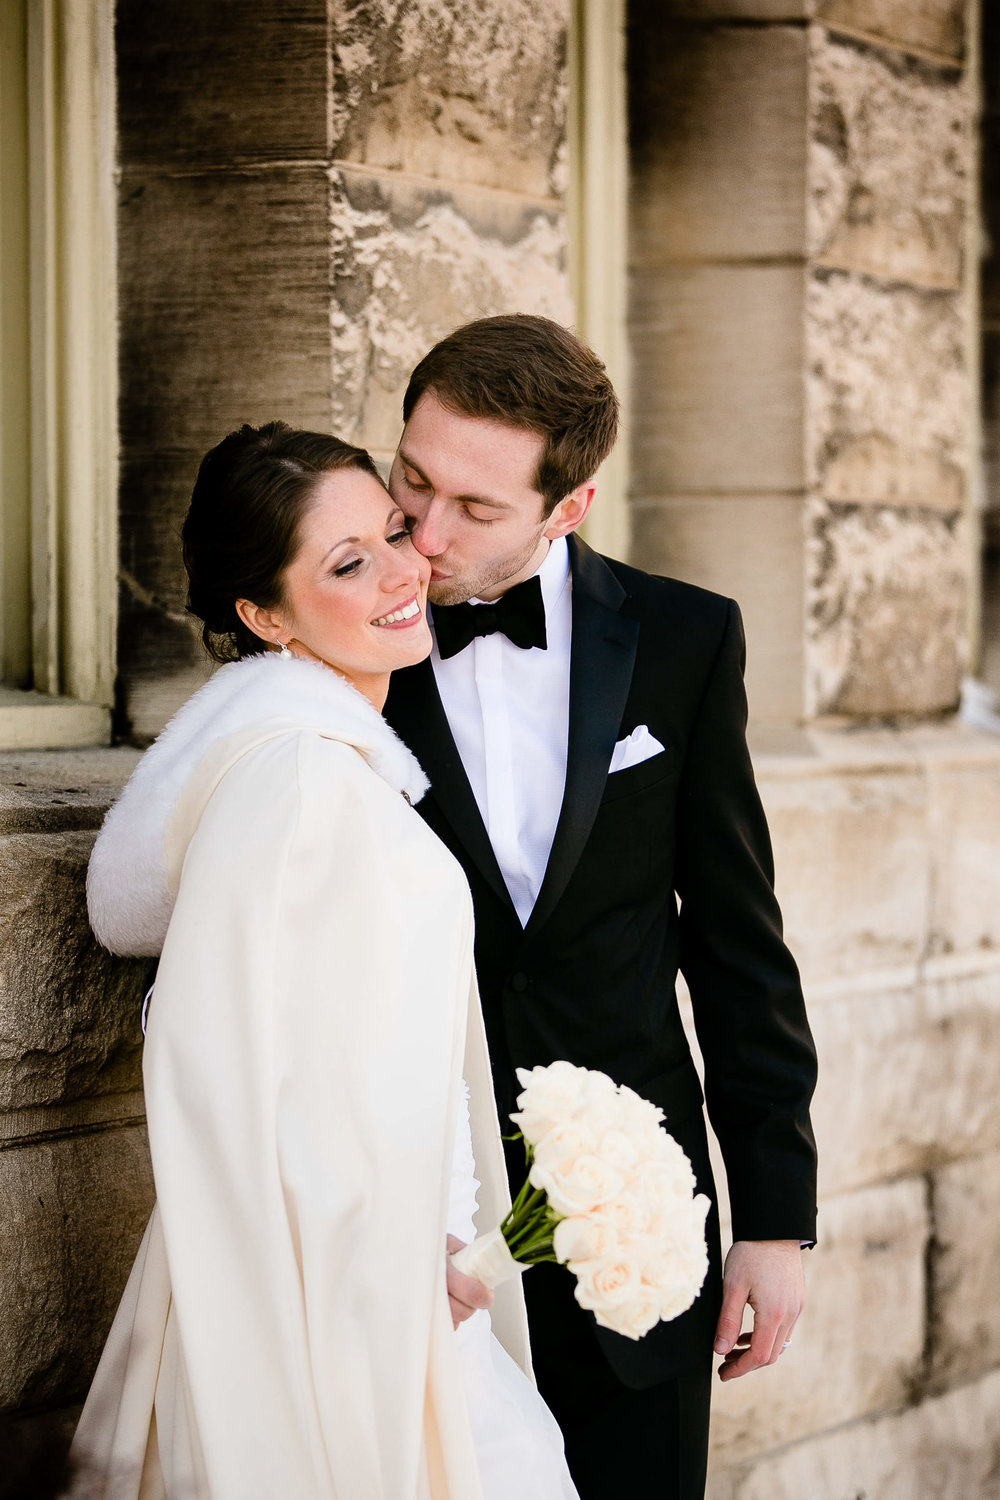 Robb McCormick Photography - Wedding Photographer (15 of 128).jpg